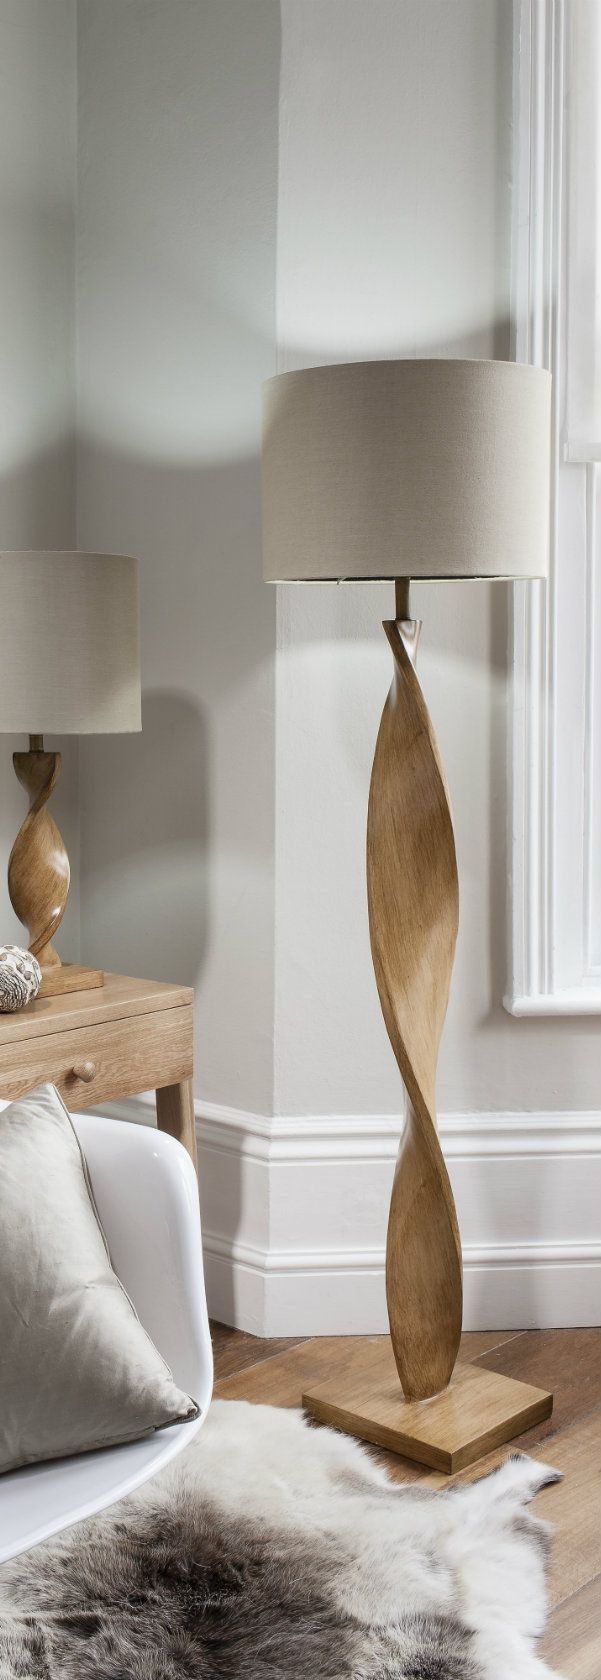 Argenta 160cm Twisting Wood Floor Lamp